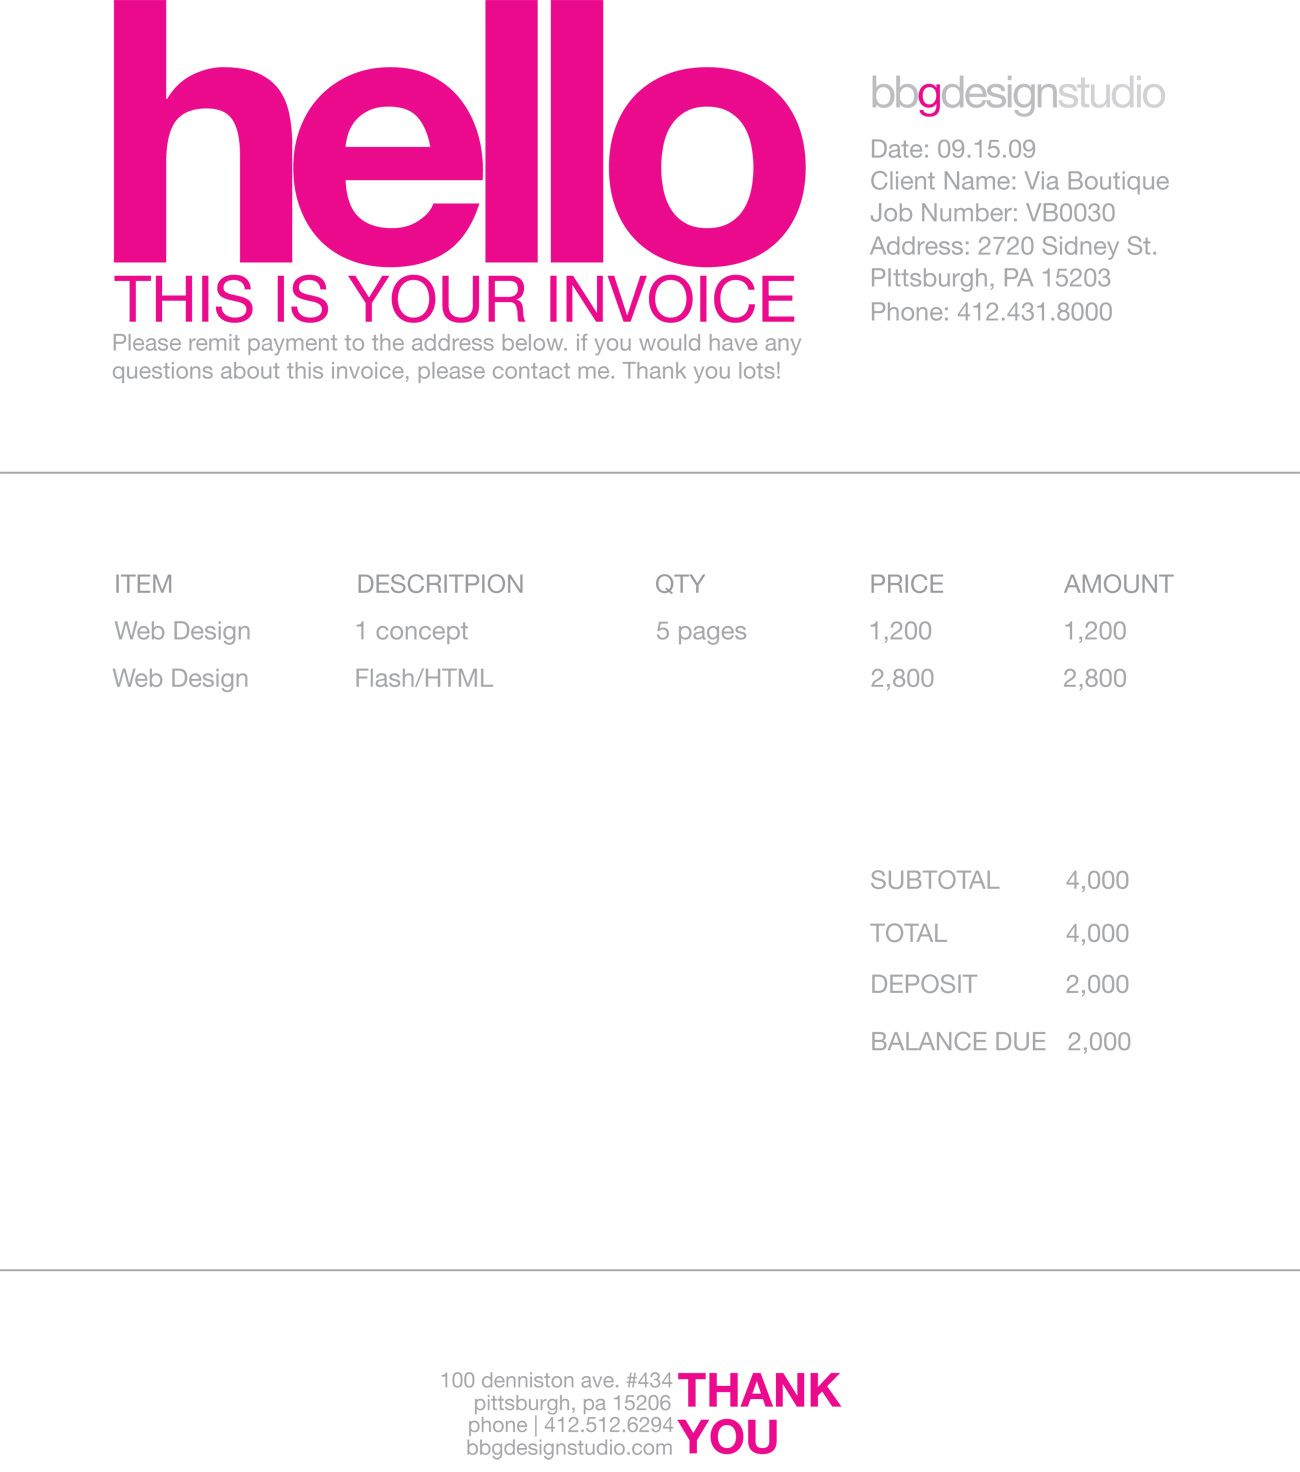 Totallocalus  Winning  Images About Invoice Design On Pinterest With Foxy Rental Invoice Template Besides Billing Invoice Template Word Furthermore Sample Letter For Invoice Payment With Nice Sample Email Invoice Also Quickbooks Invoice Template Excel In Addition Sample Invoice Freelance And Auto Invoice Price As Well As Free Invoice Tracking Software Additionally Pay A Fedex Invoice Online From Pinterestcom With Totallocalus  Foxy  Images About Invoice Design On Pinterest With Nice Rental Invoice Template Besides Billing Invoice Template Word Furthermore Sample Letter For Invoice Payment And Winning Sample Email Invoice Also Quickbooks Invoice Template Excel In Addition Sample Invoice Freelance From Pinterestcom